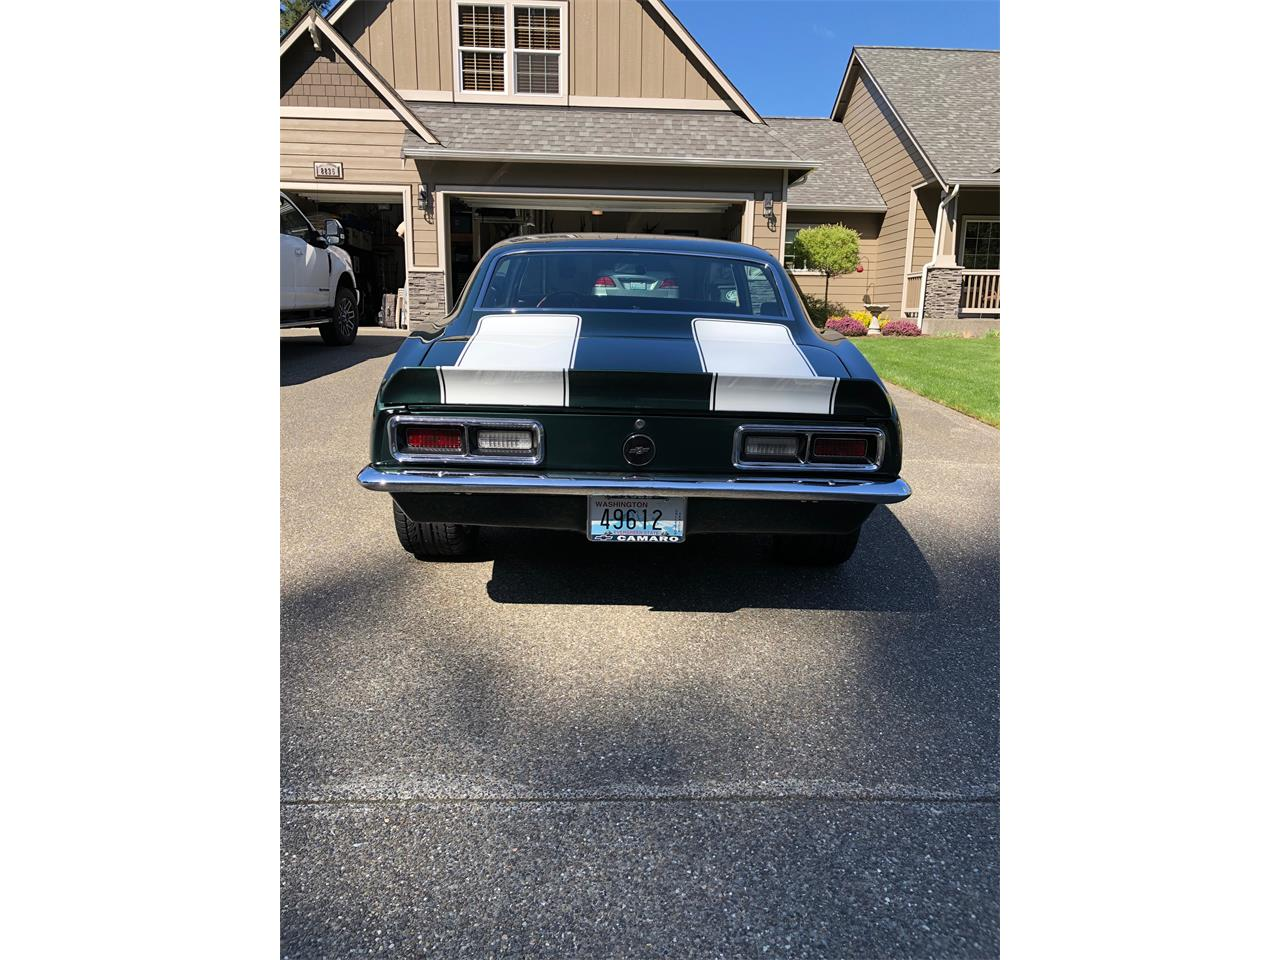 Large Picture of Classic '68 Camaro located in Olympia Washington - $42,500.00 Offered by a Private Seller - Q8FK